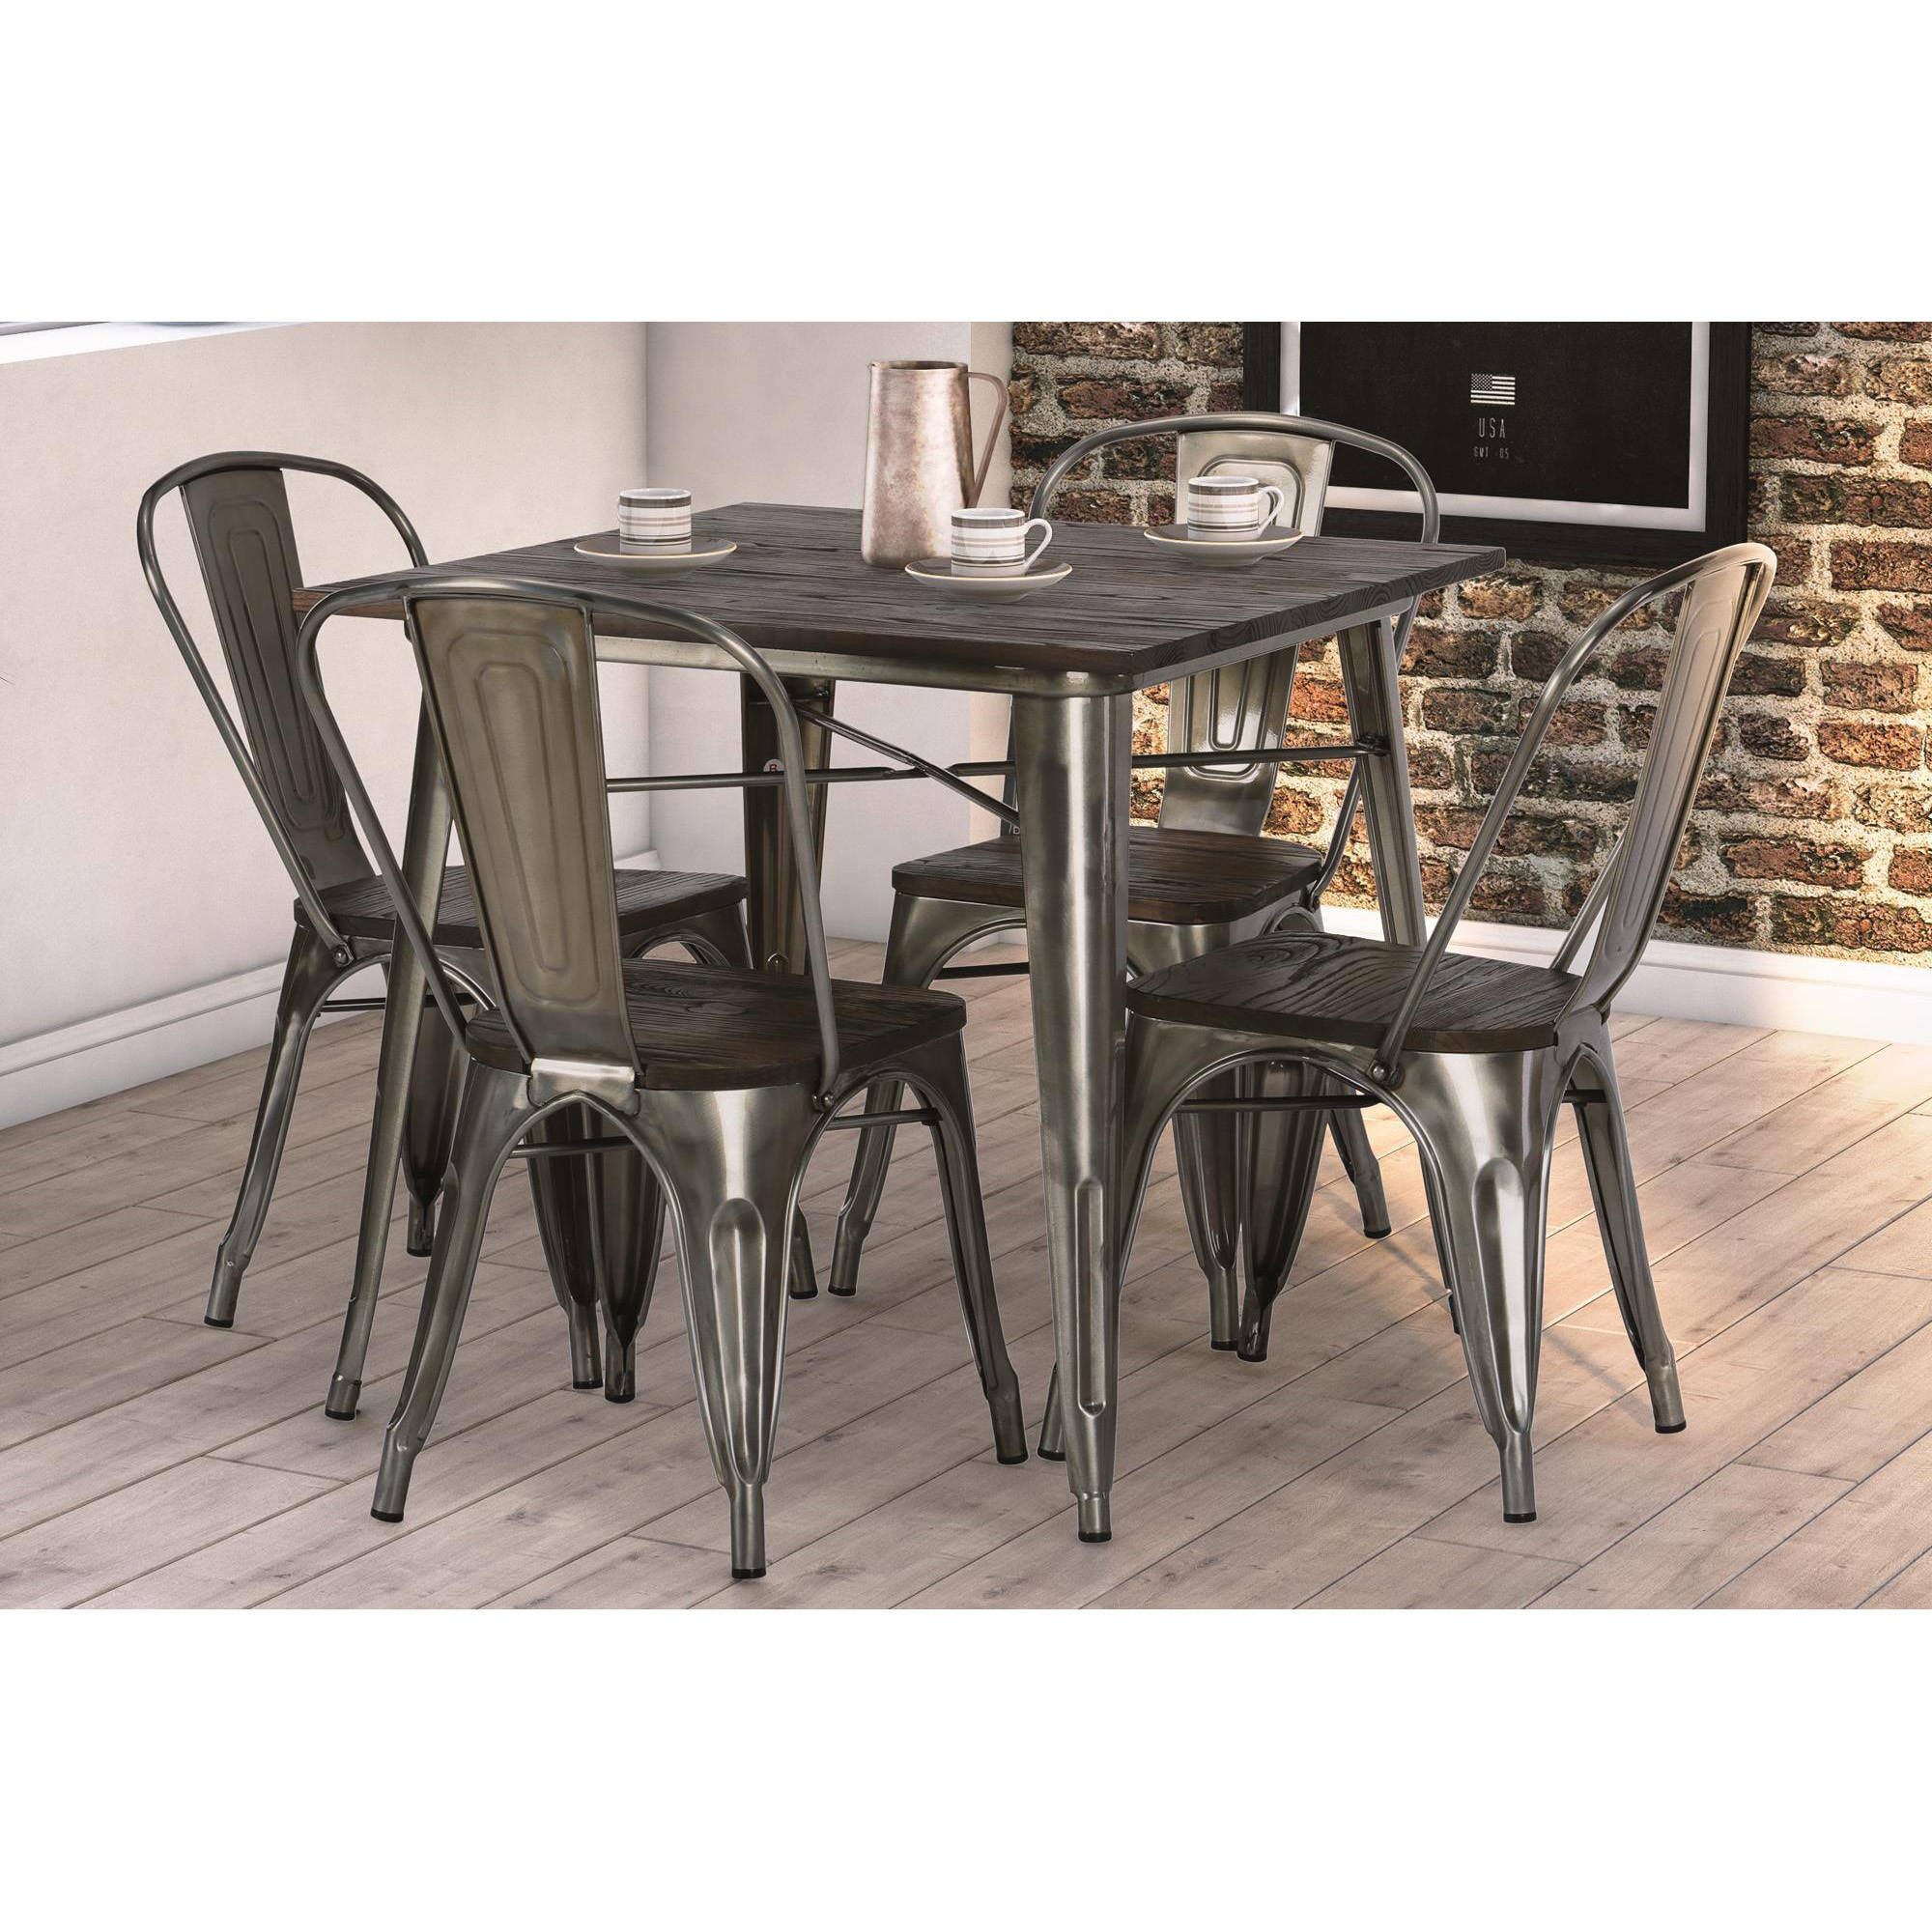 DHP Fusion Dining Table, Square, Antique Gun Metal/Wood   Walmart.com